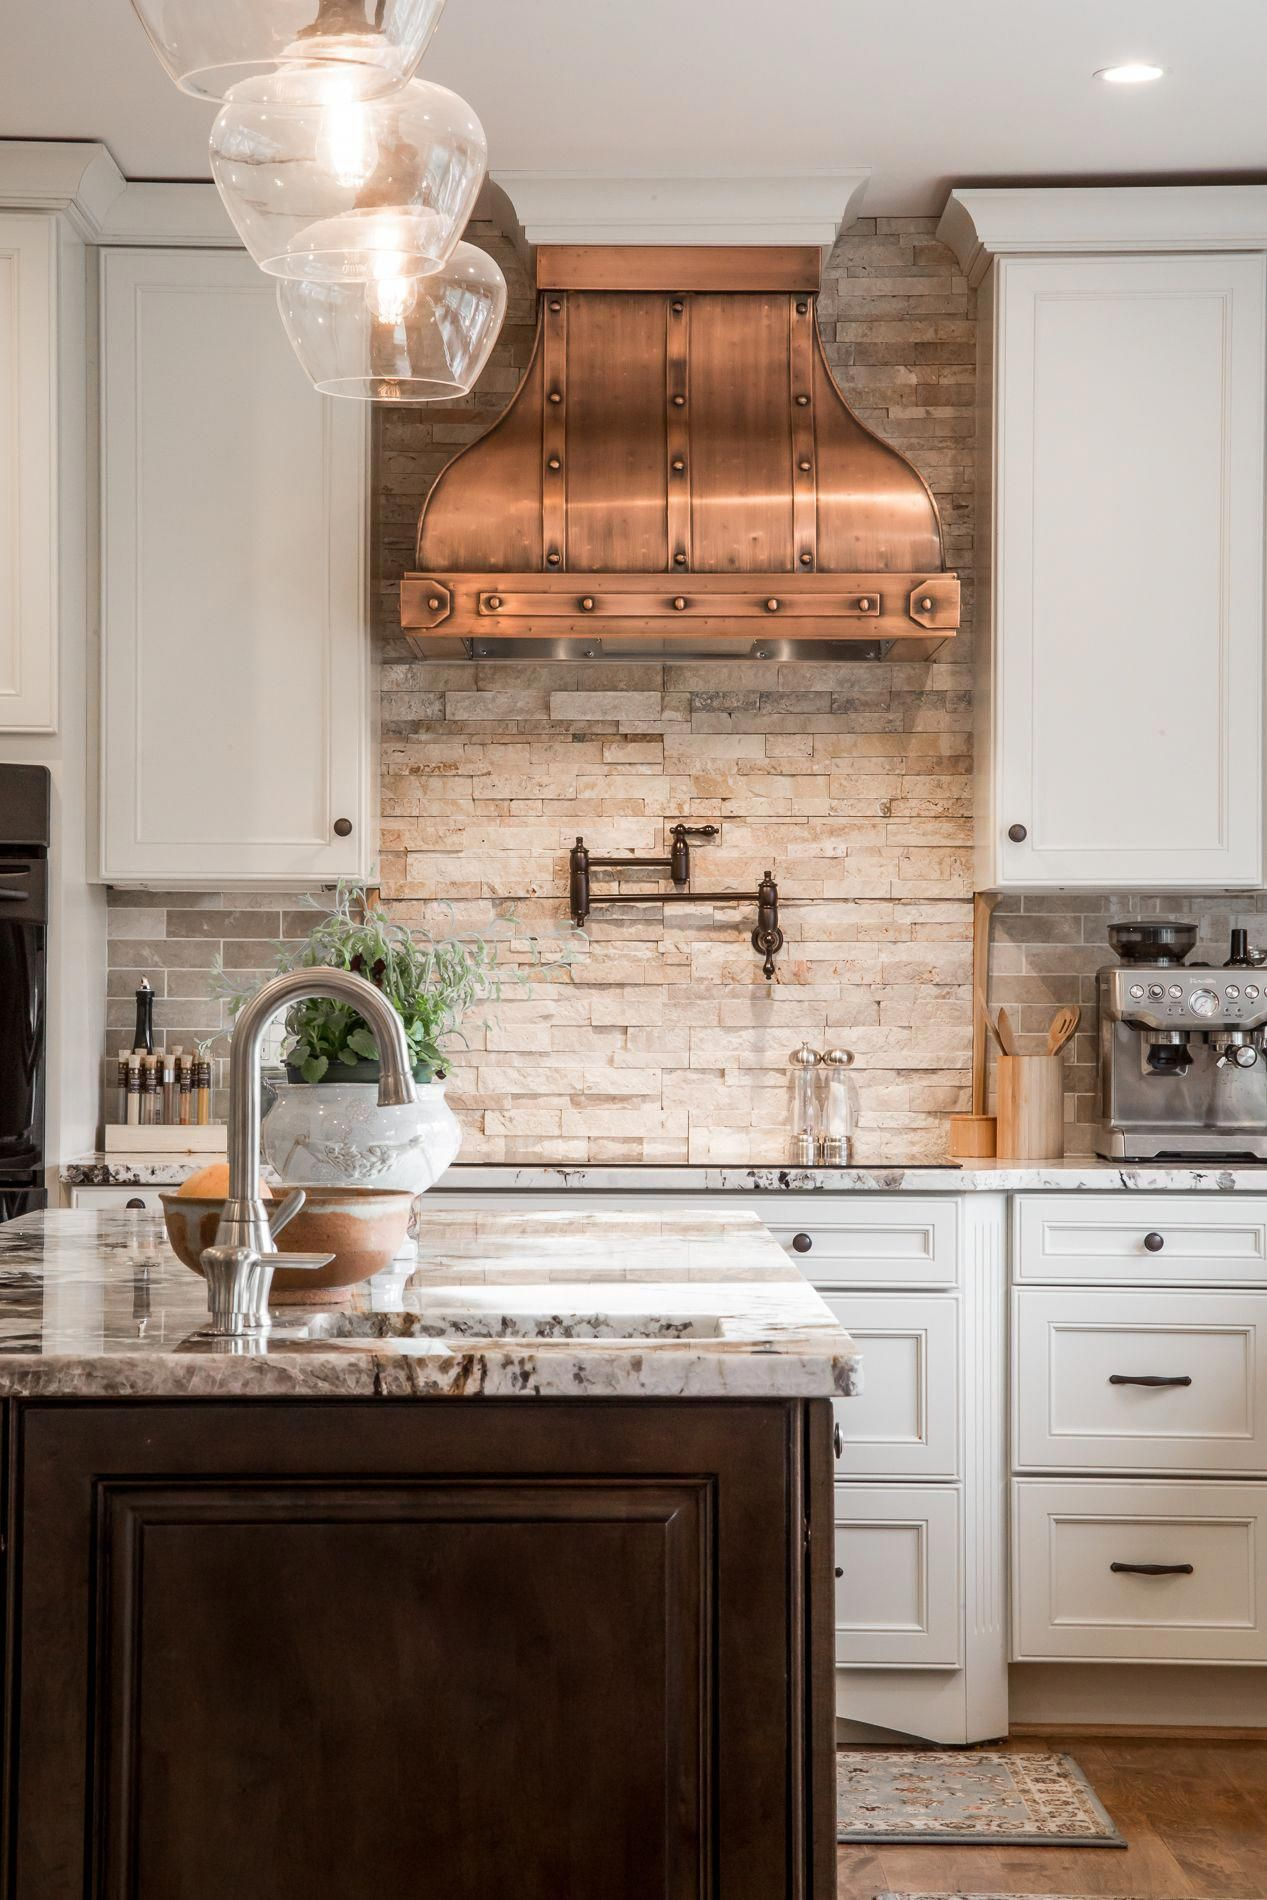 Give Your Kitchen A Copper Shine With Camellia Range Hood From Our Collectio Country Kitchen Backsplash French Country Decorating Kitchen Country Style Kitchen